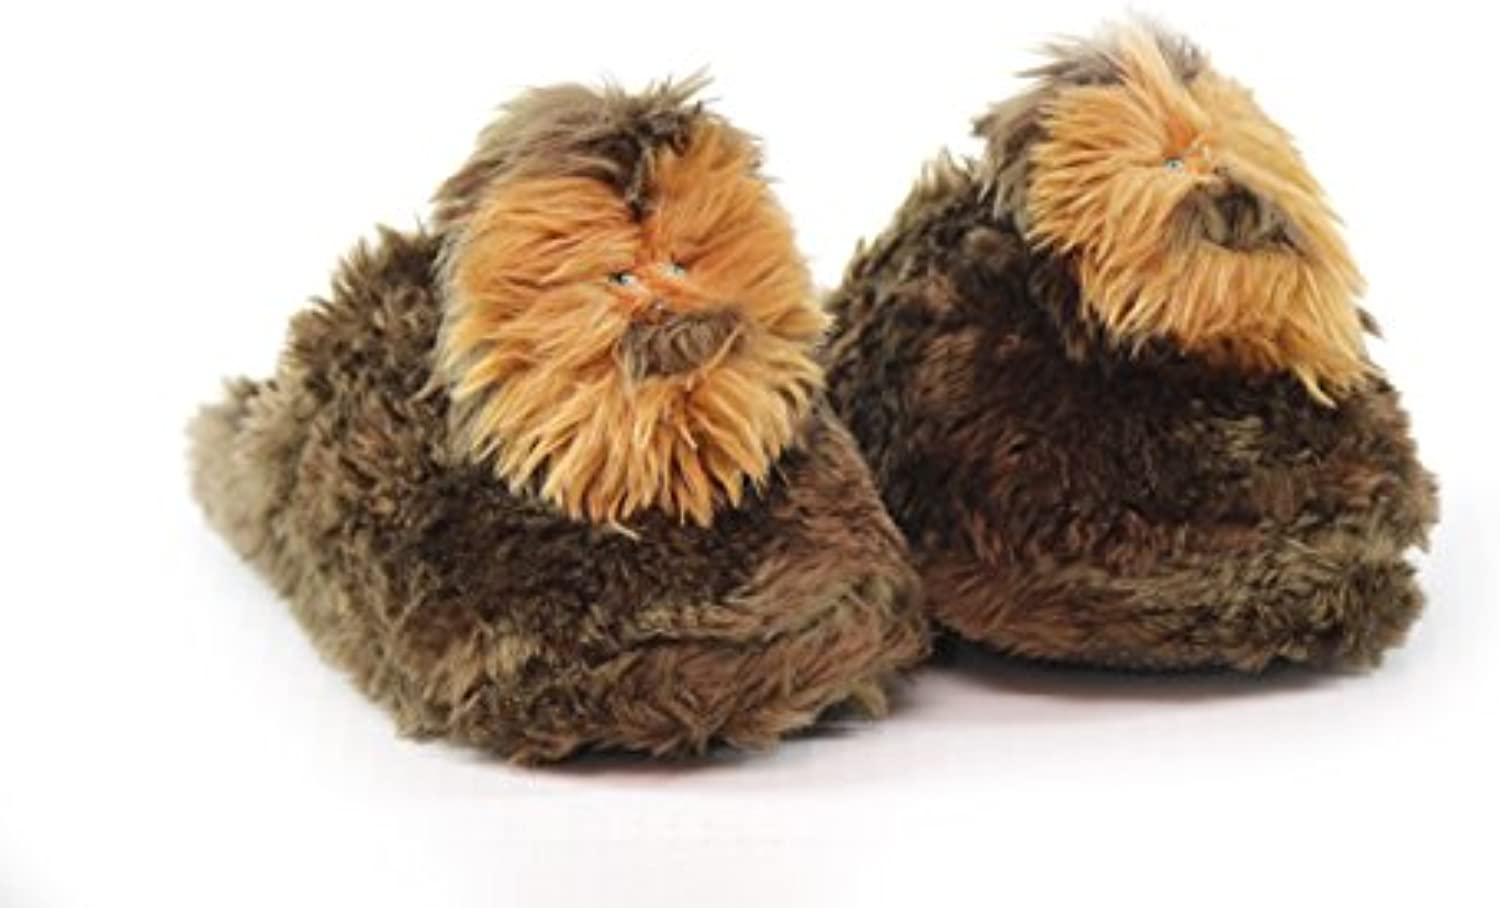 Star Wars Zapatillas Chewbacca Talla 38-39